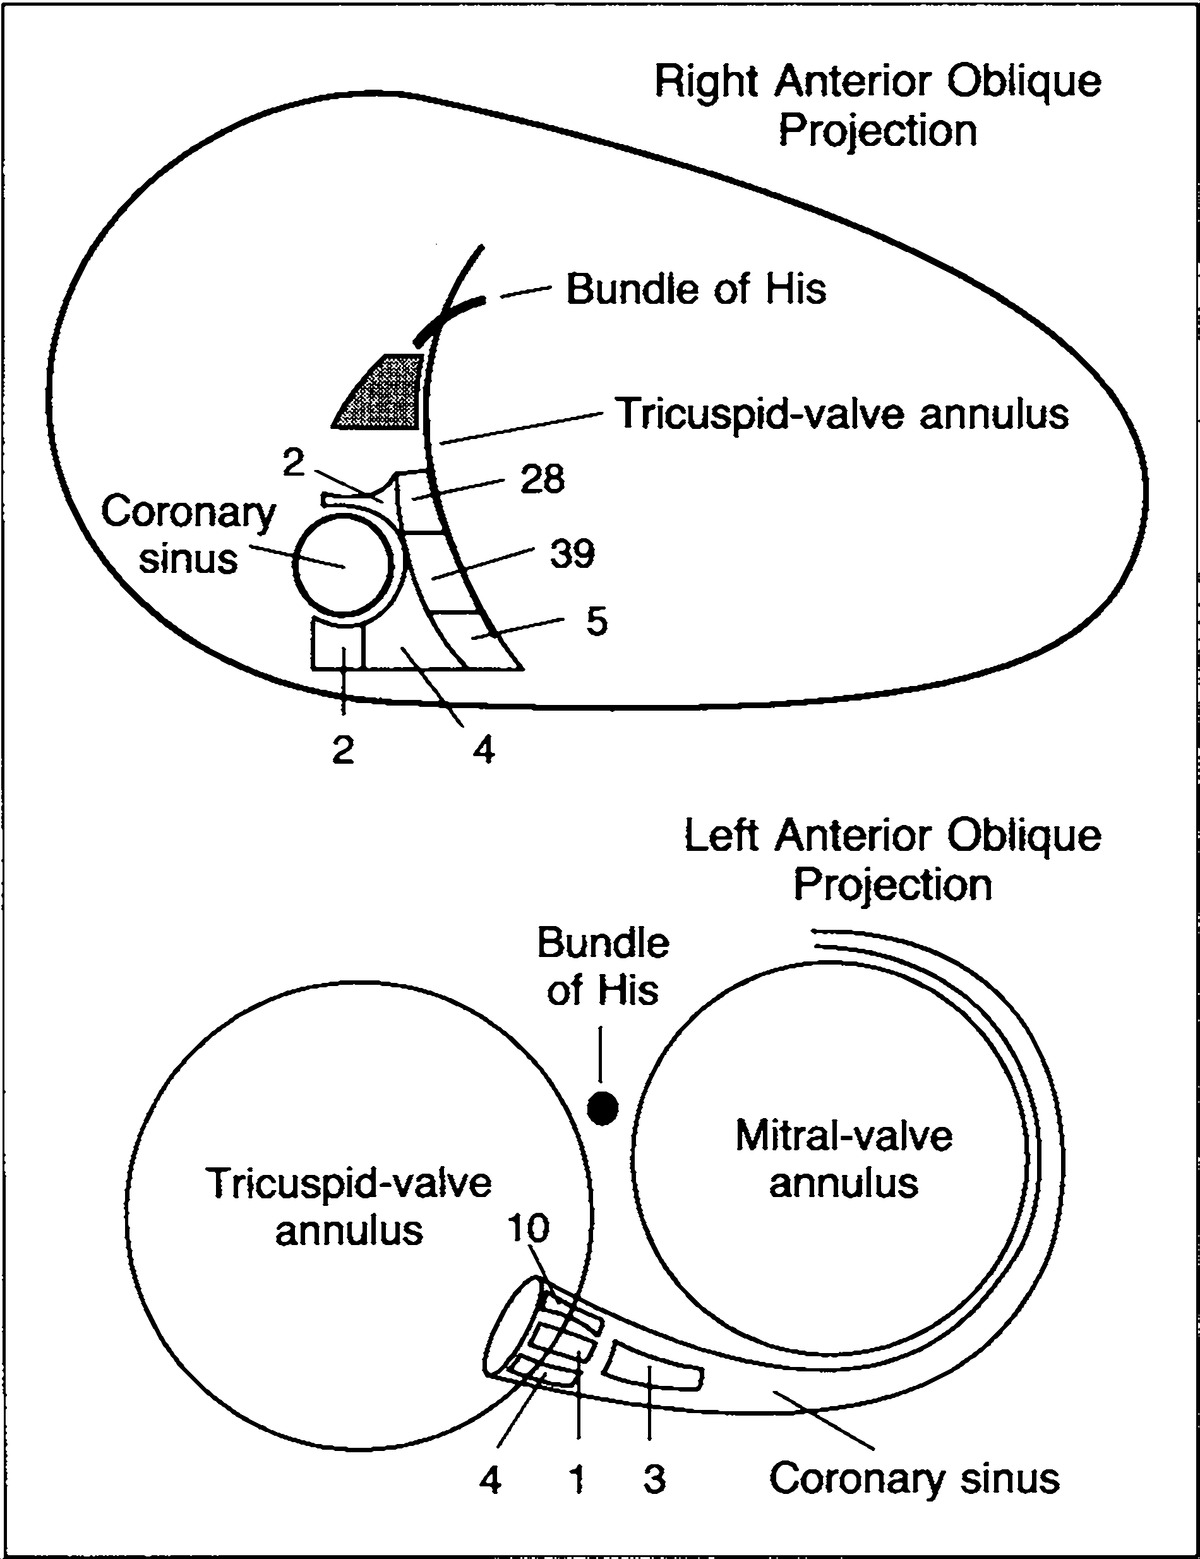 Schematic representation of the septum as viewed fluoroscopically in the right and left anterior oblique projections showing the 98 sites of successful